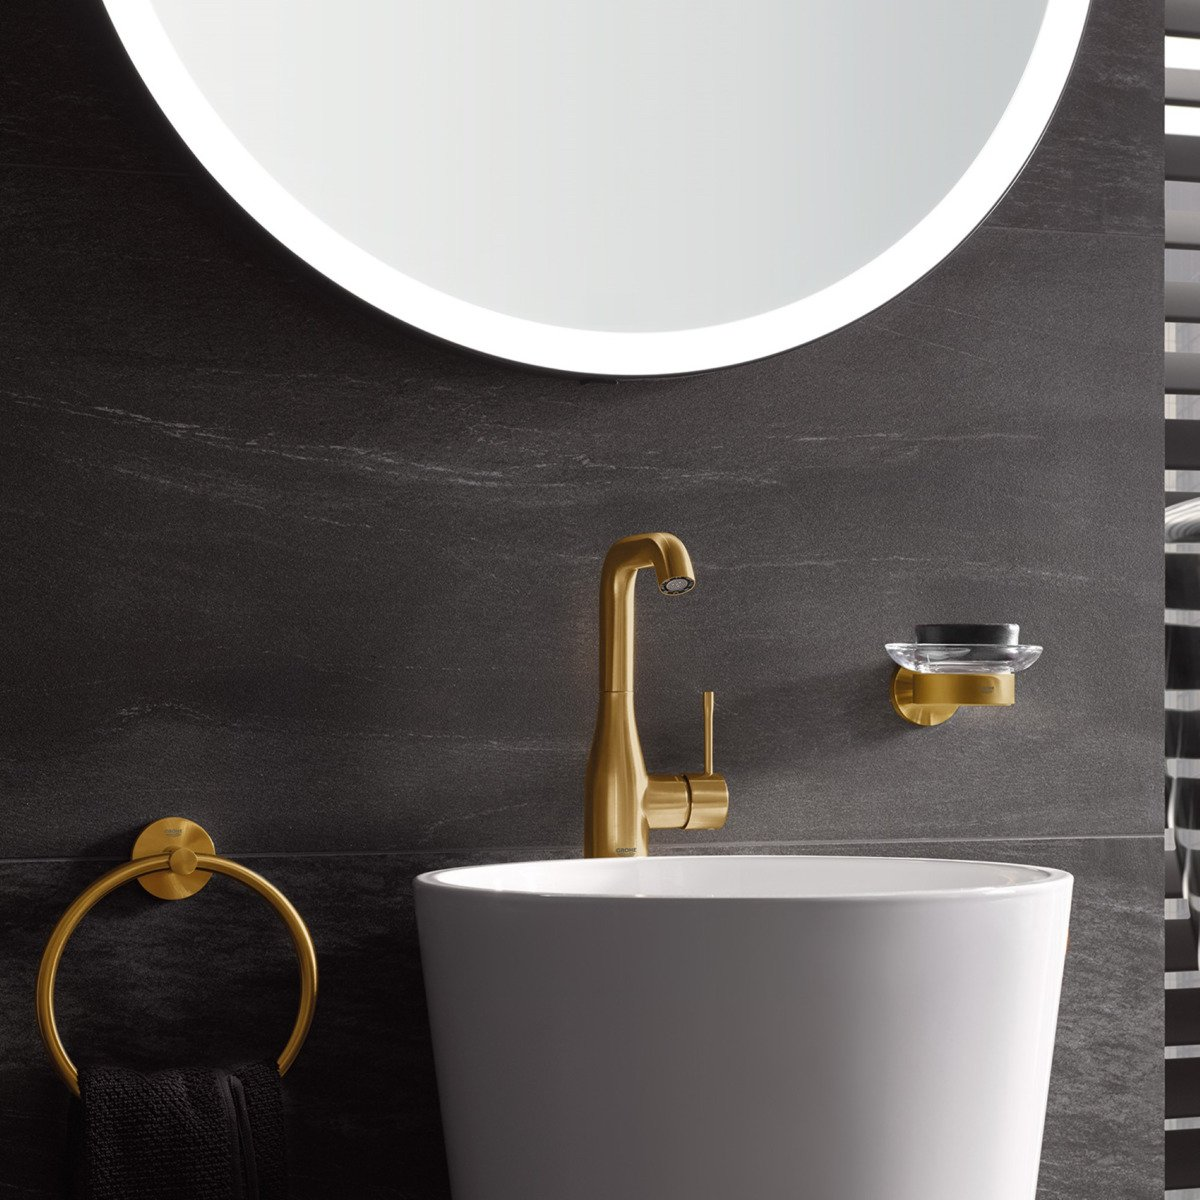 grohe essence new robinet lavabo taille l avec haut bec. Black Bedroom Furniture Sets. Home Design Ideas